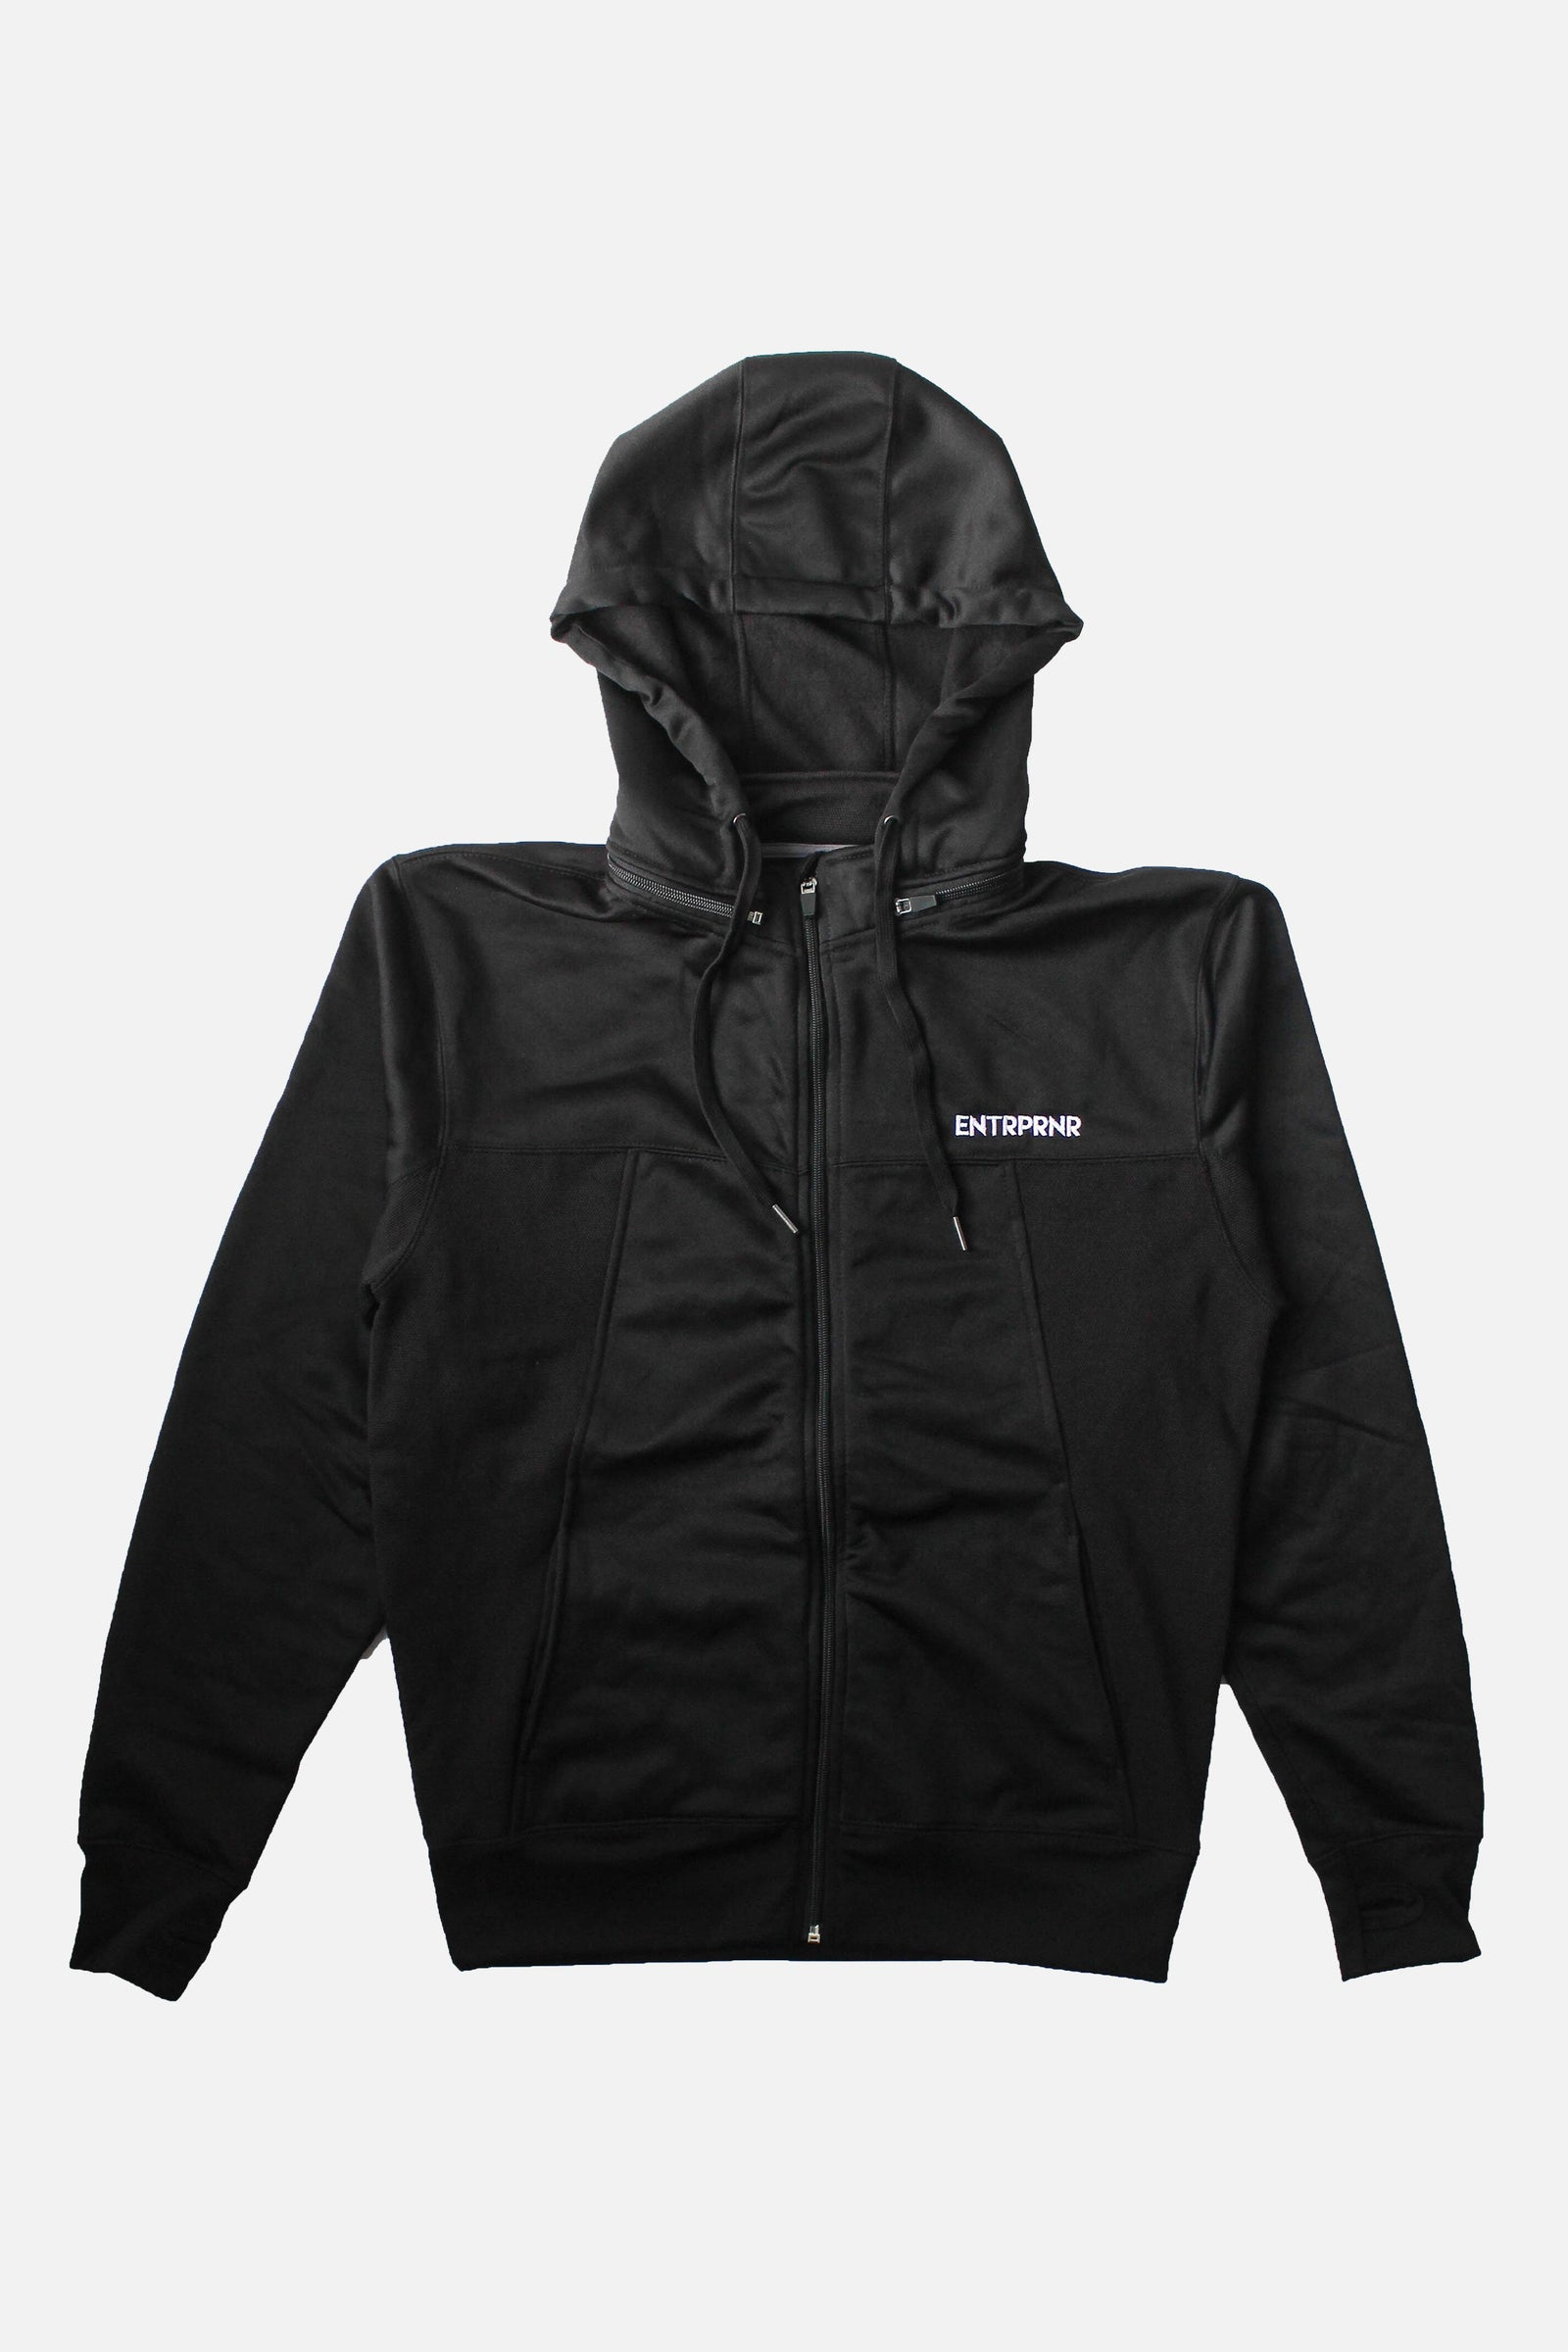 ENTRPRNR Premium Tech Jacket - Black - ENTRPRNR® | The Entrepreneur's Clothing Brand. | Stagnancy is the Enemy. Action is King.